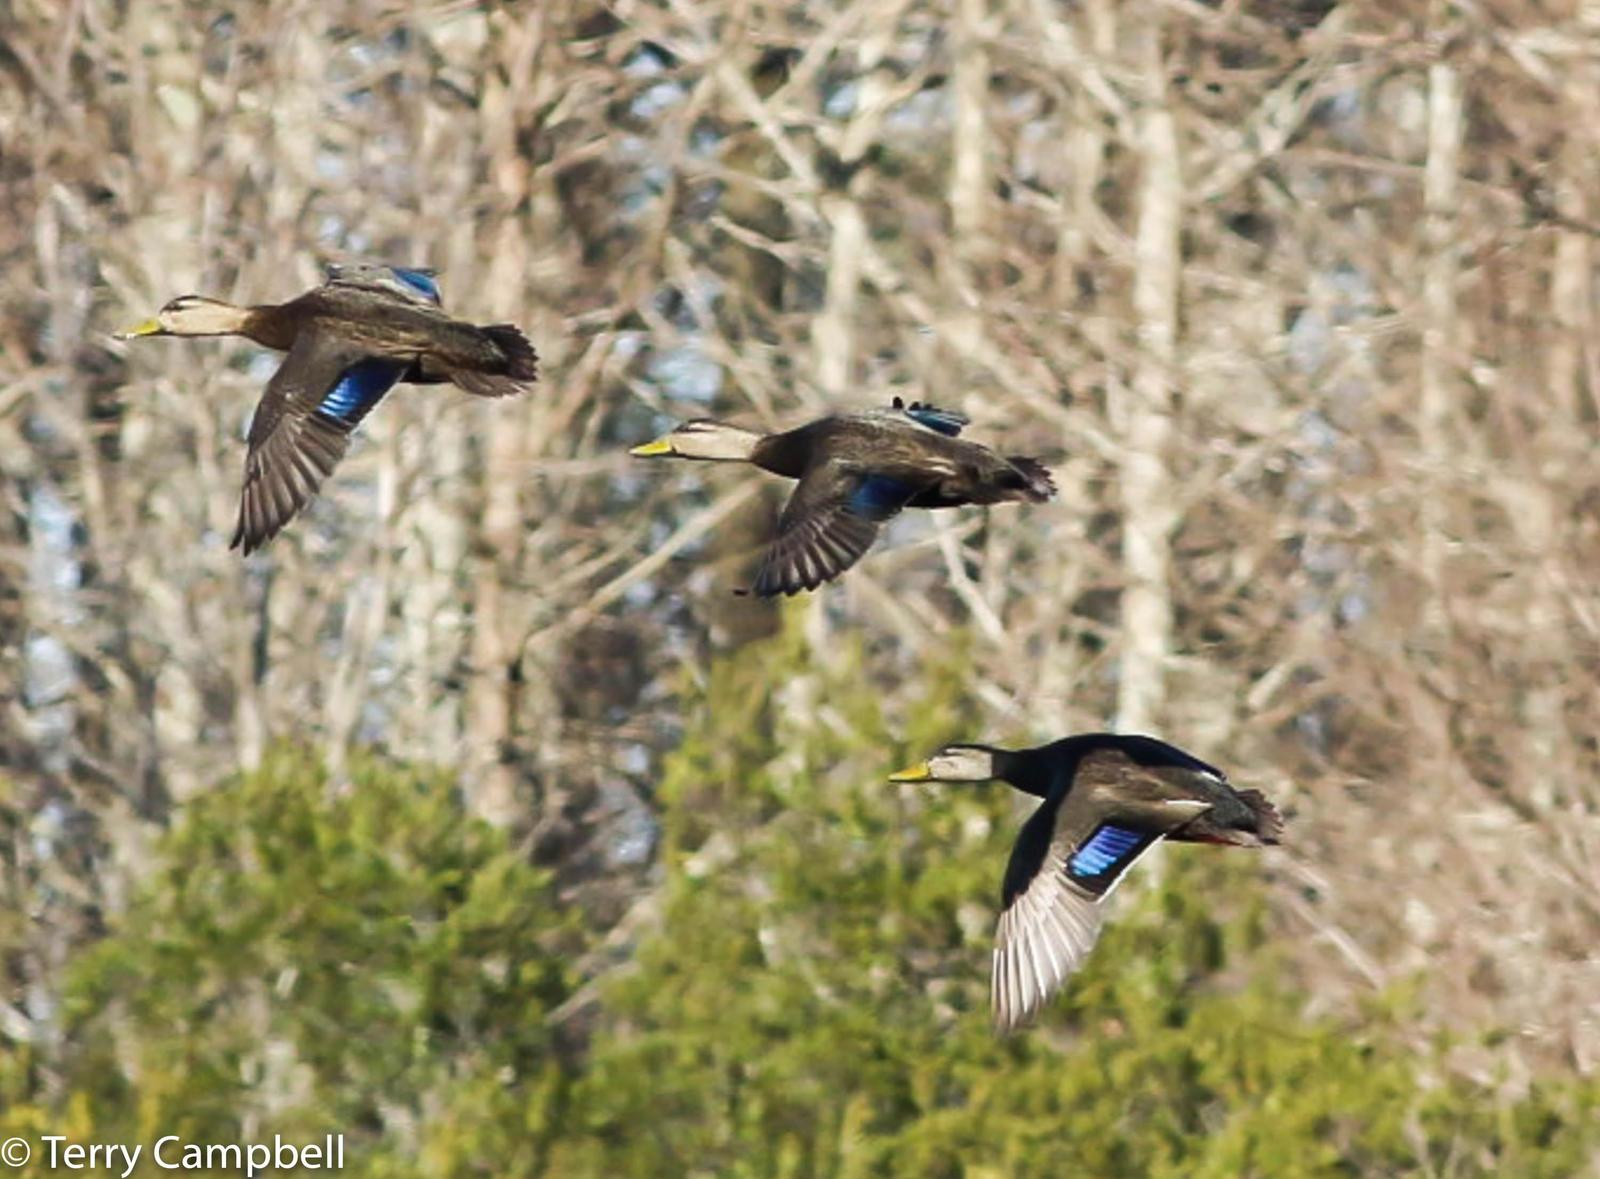 American Black Duck Photo by Terry Campbell